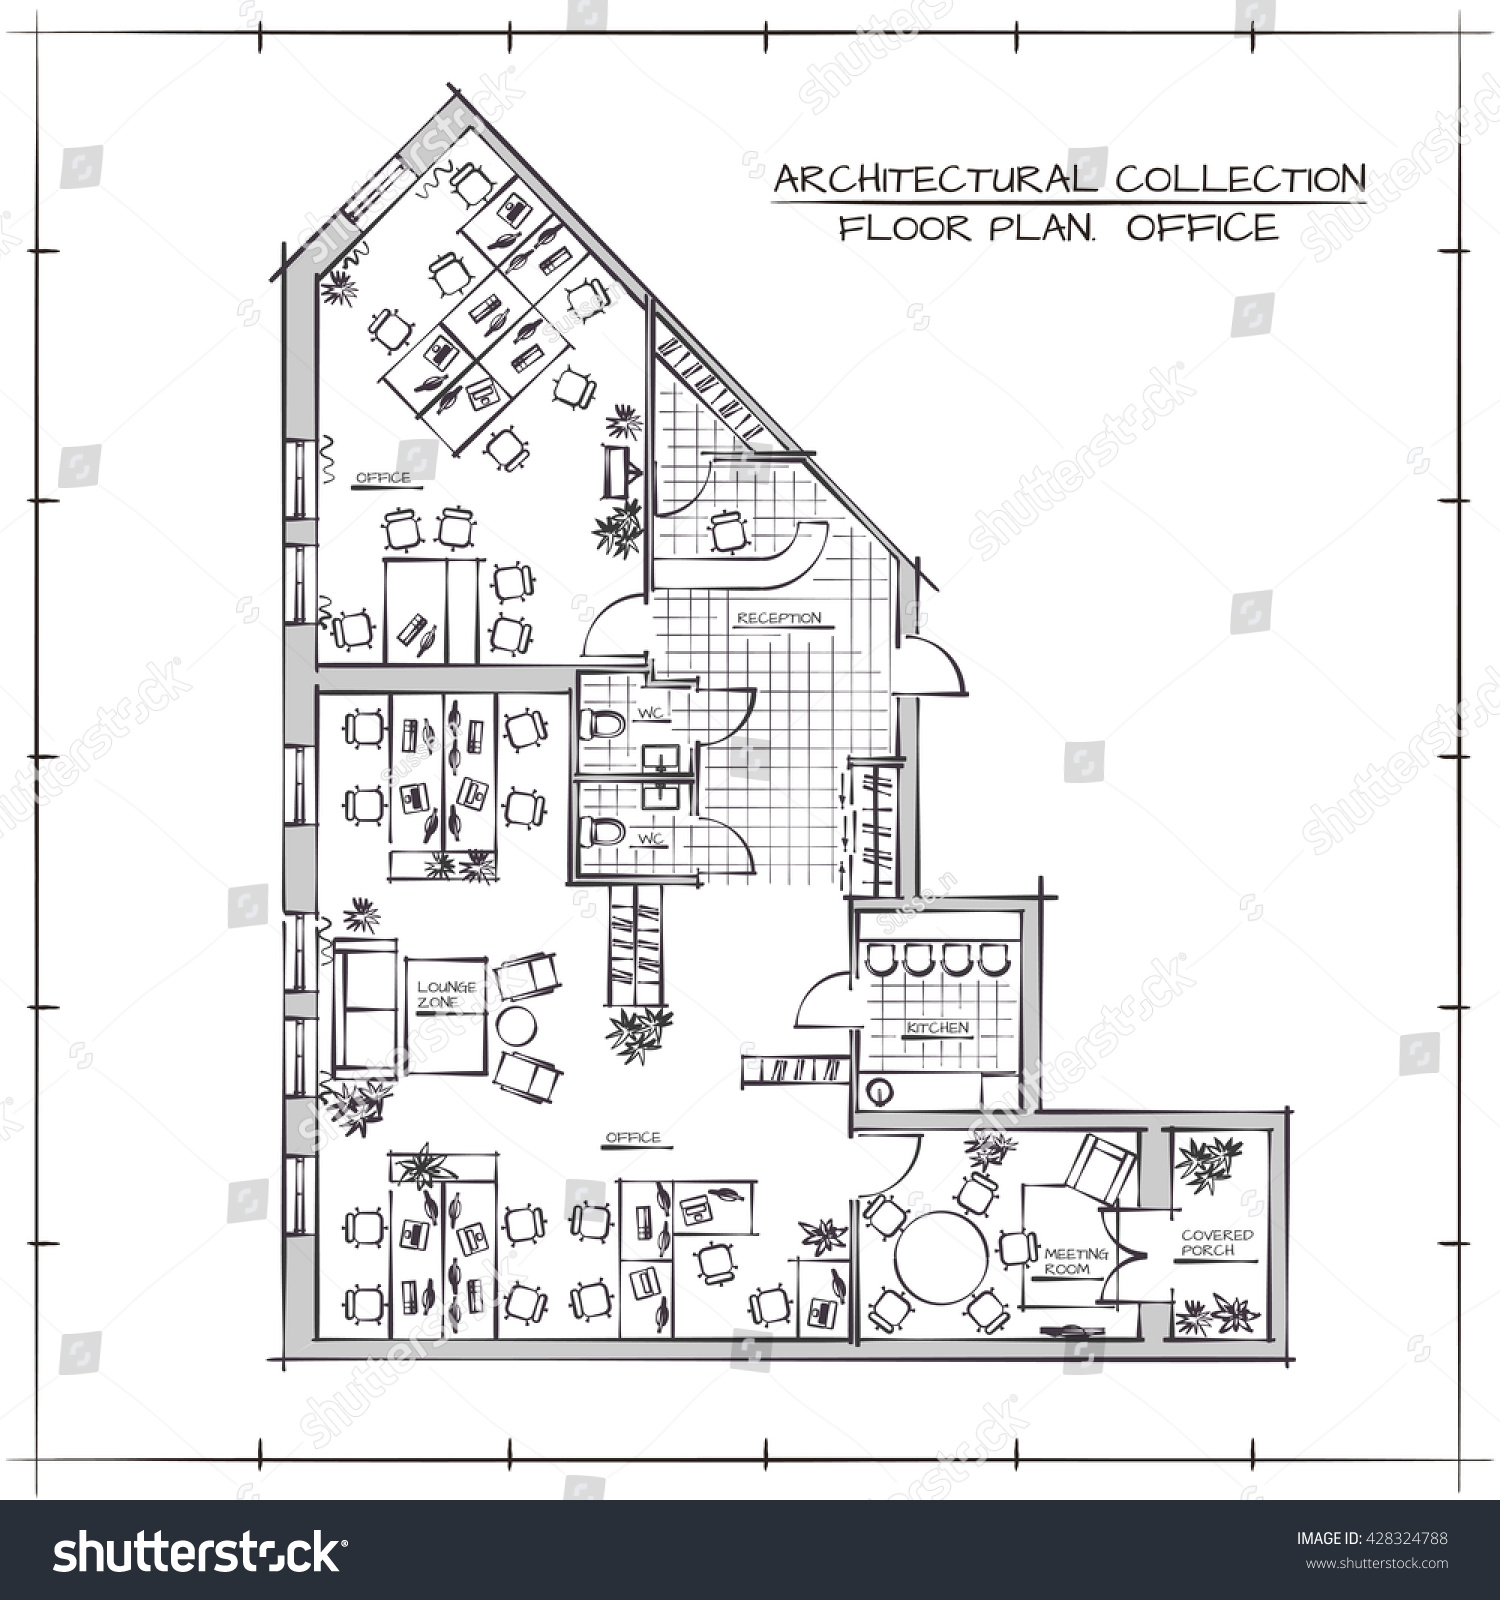 architectural handdrawn floor plan office workspace stock vector